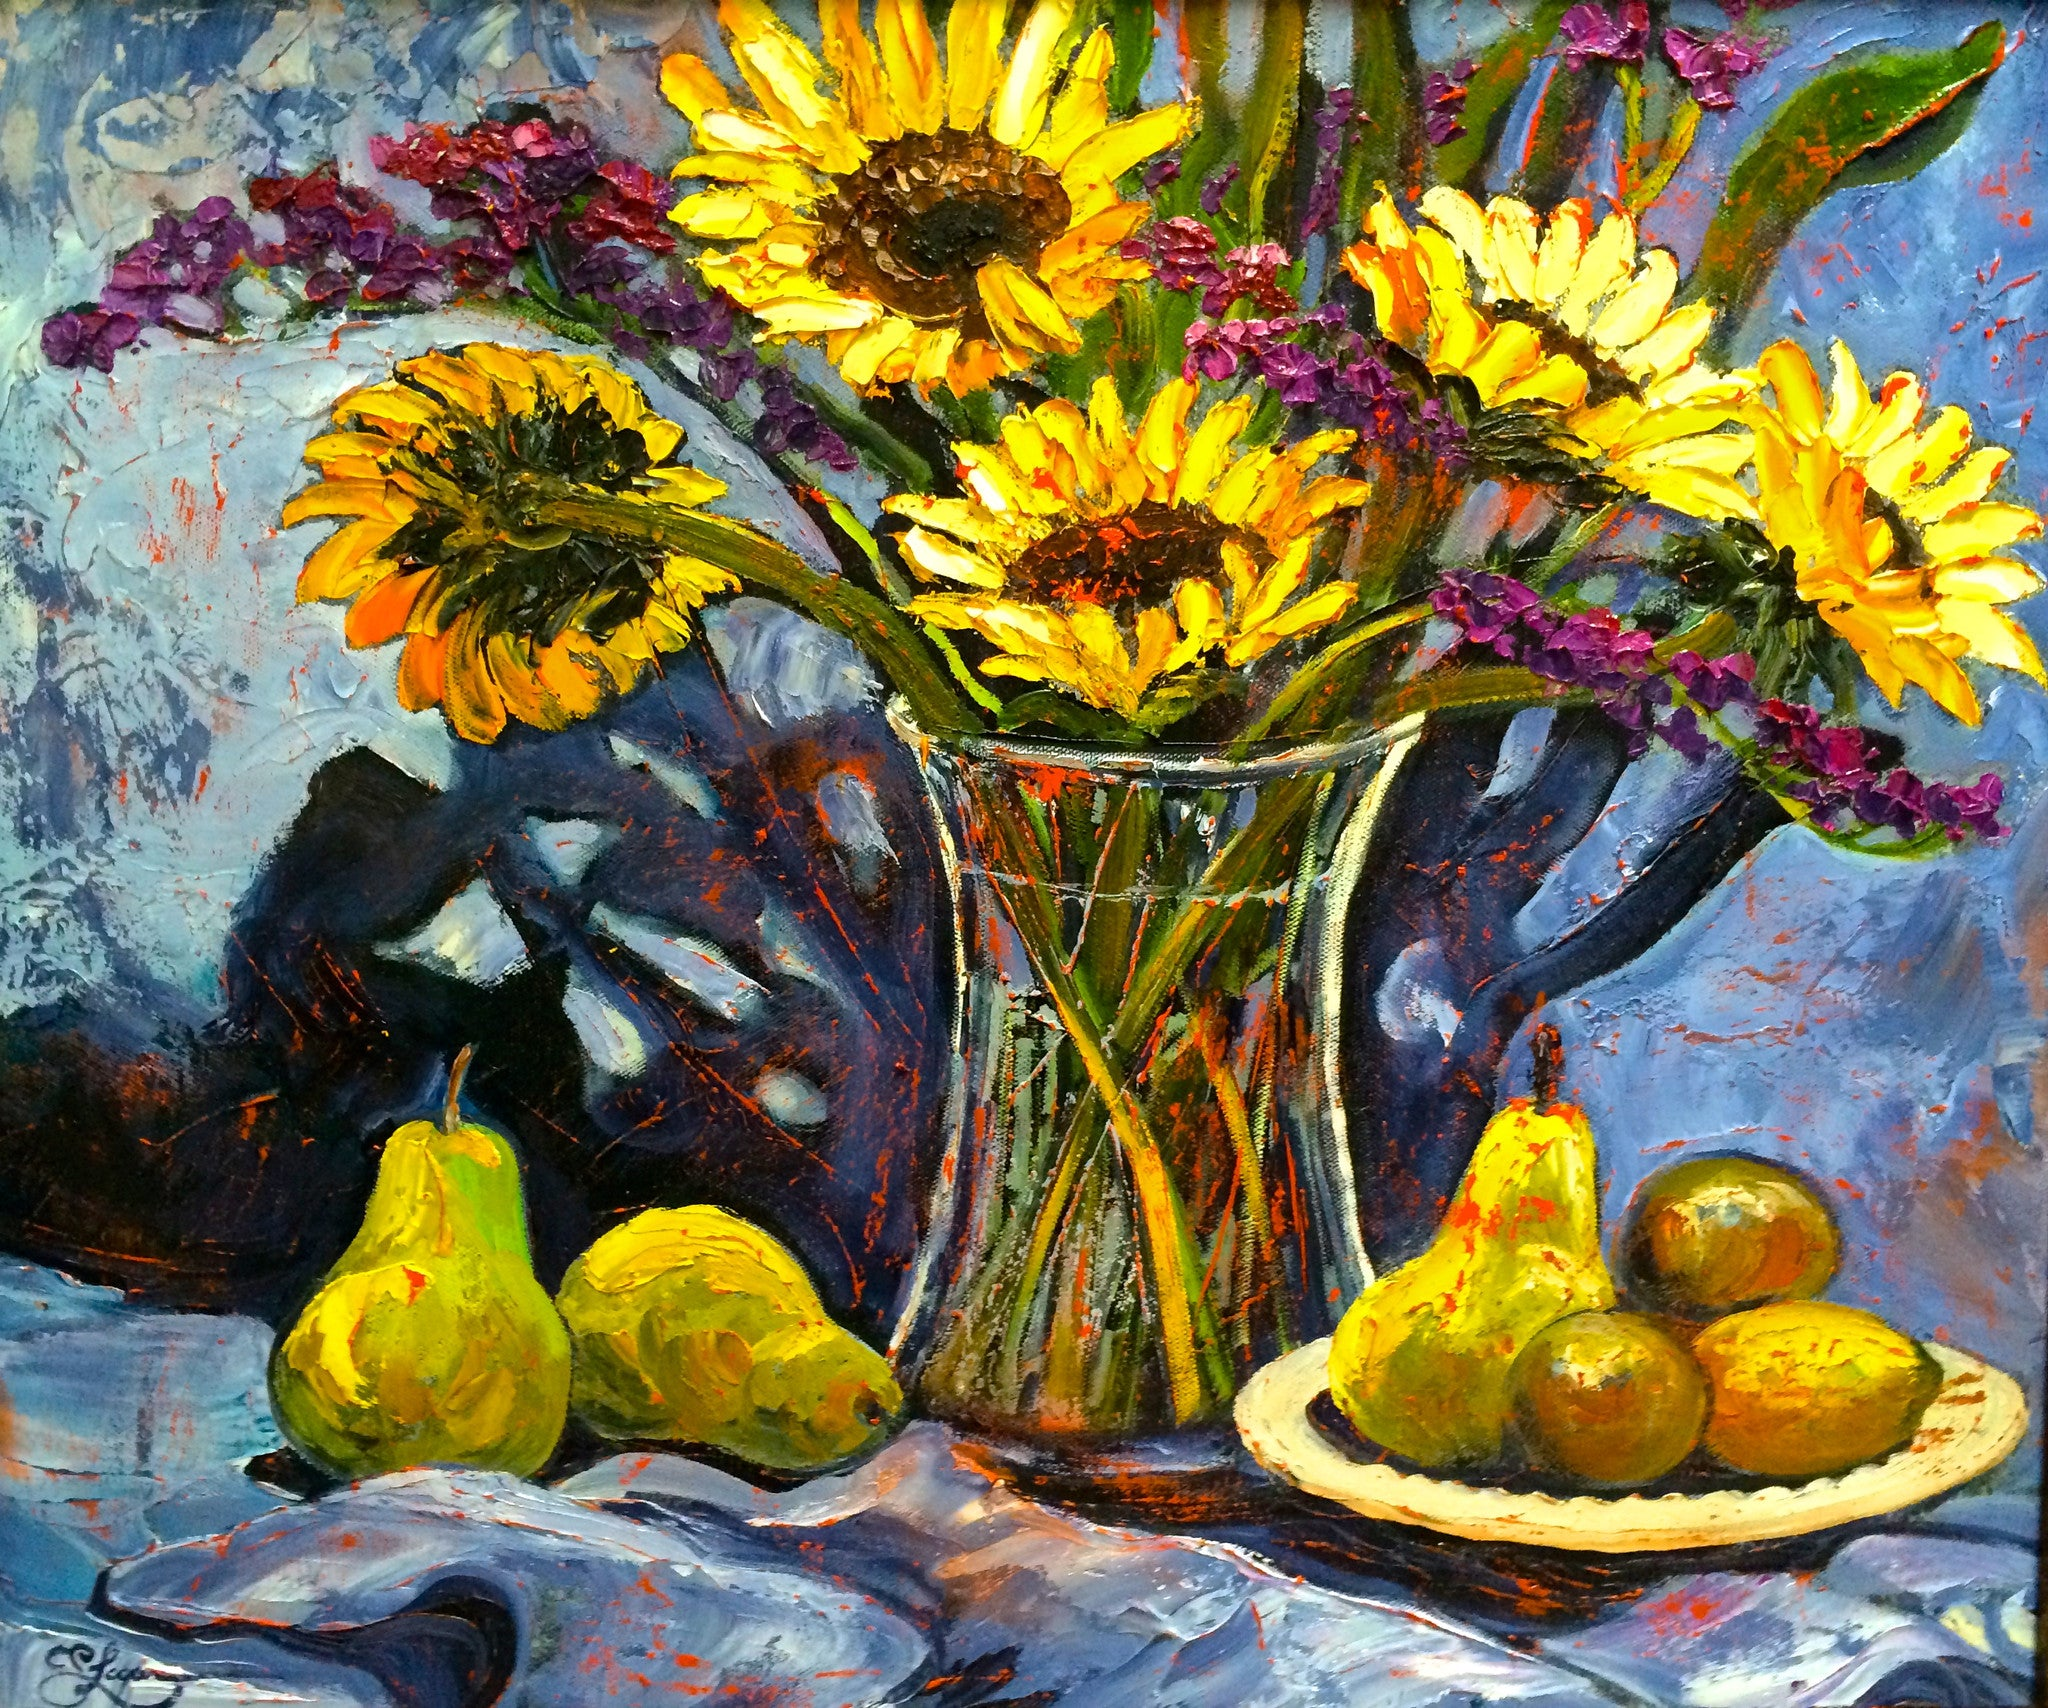 Sunflowers and Pears - 20 x 24   750.